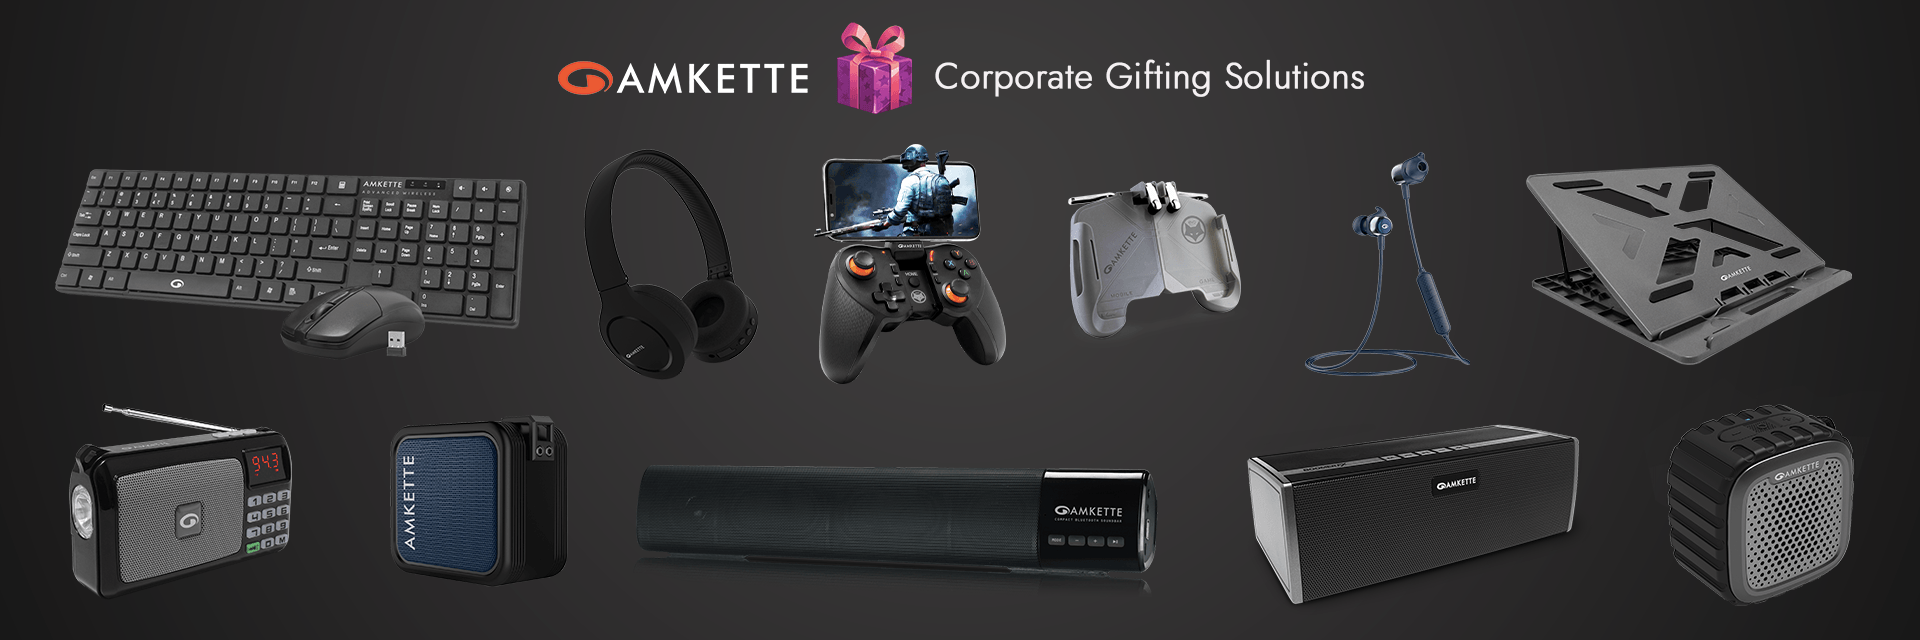 Corporate Gifting by amkette